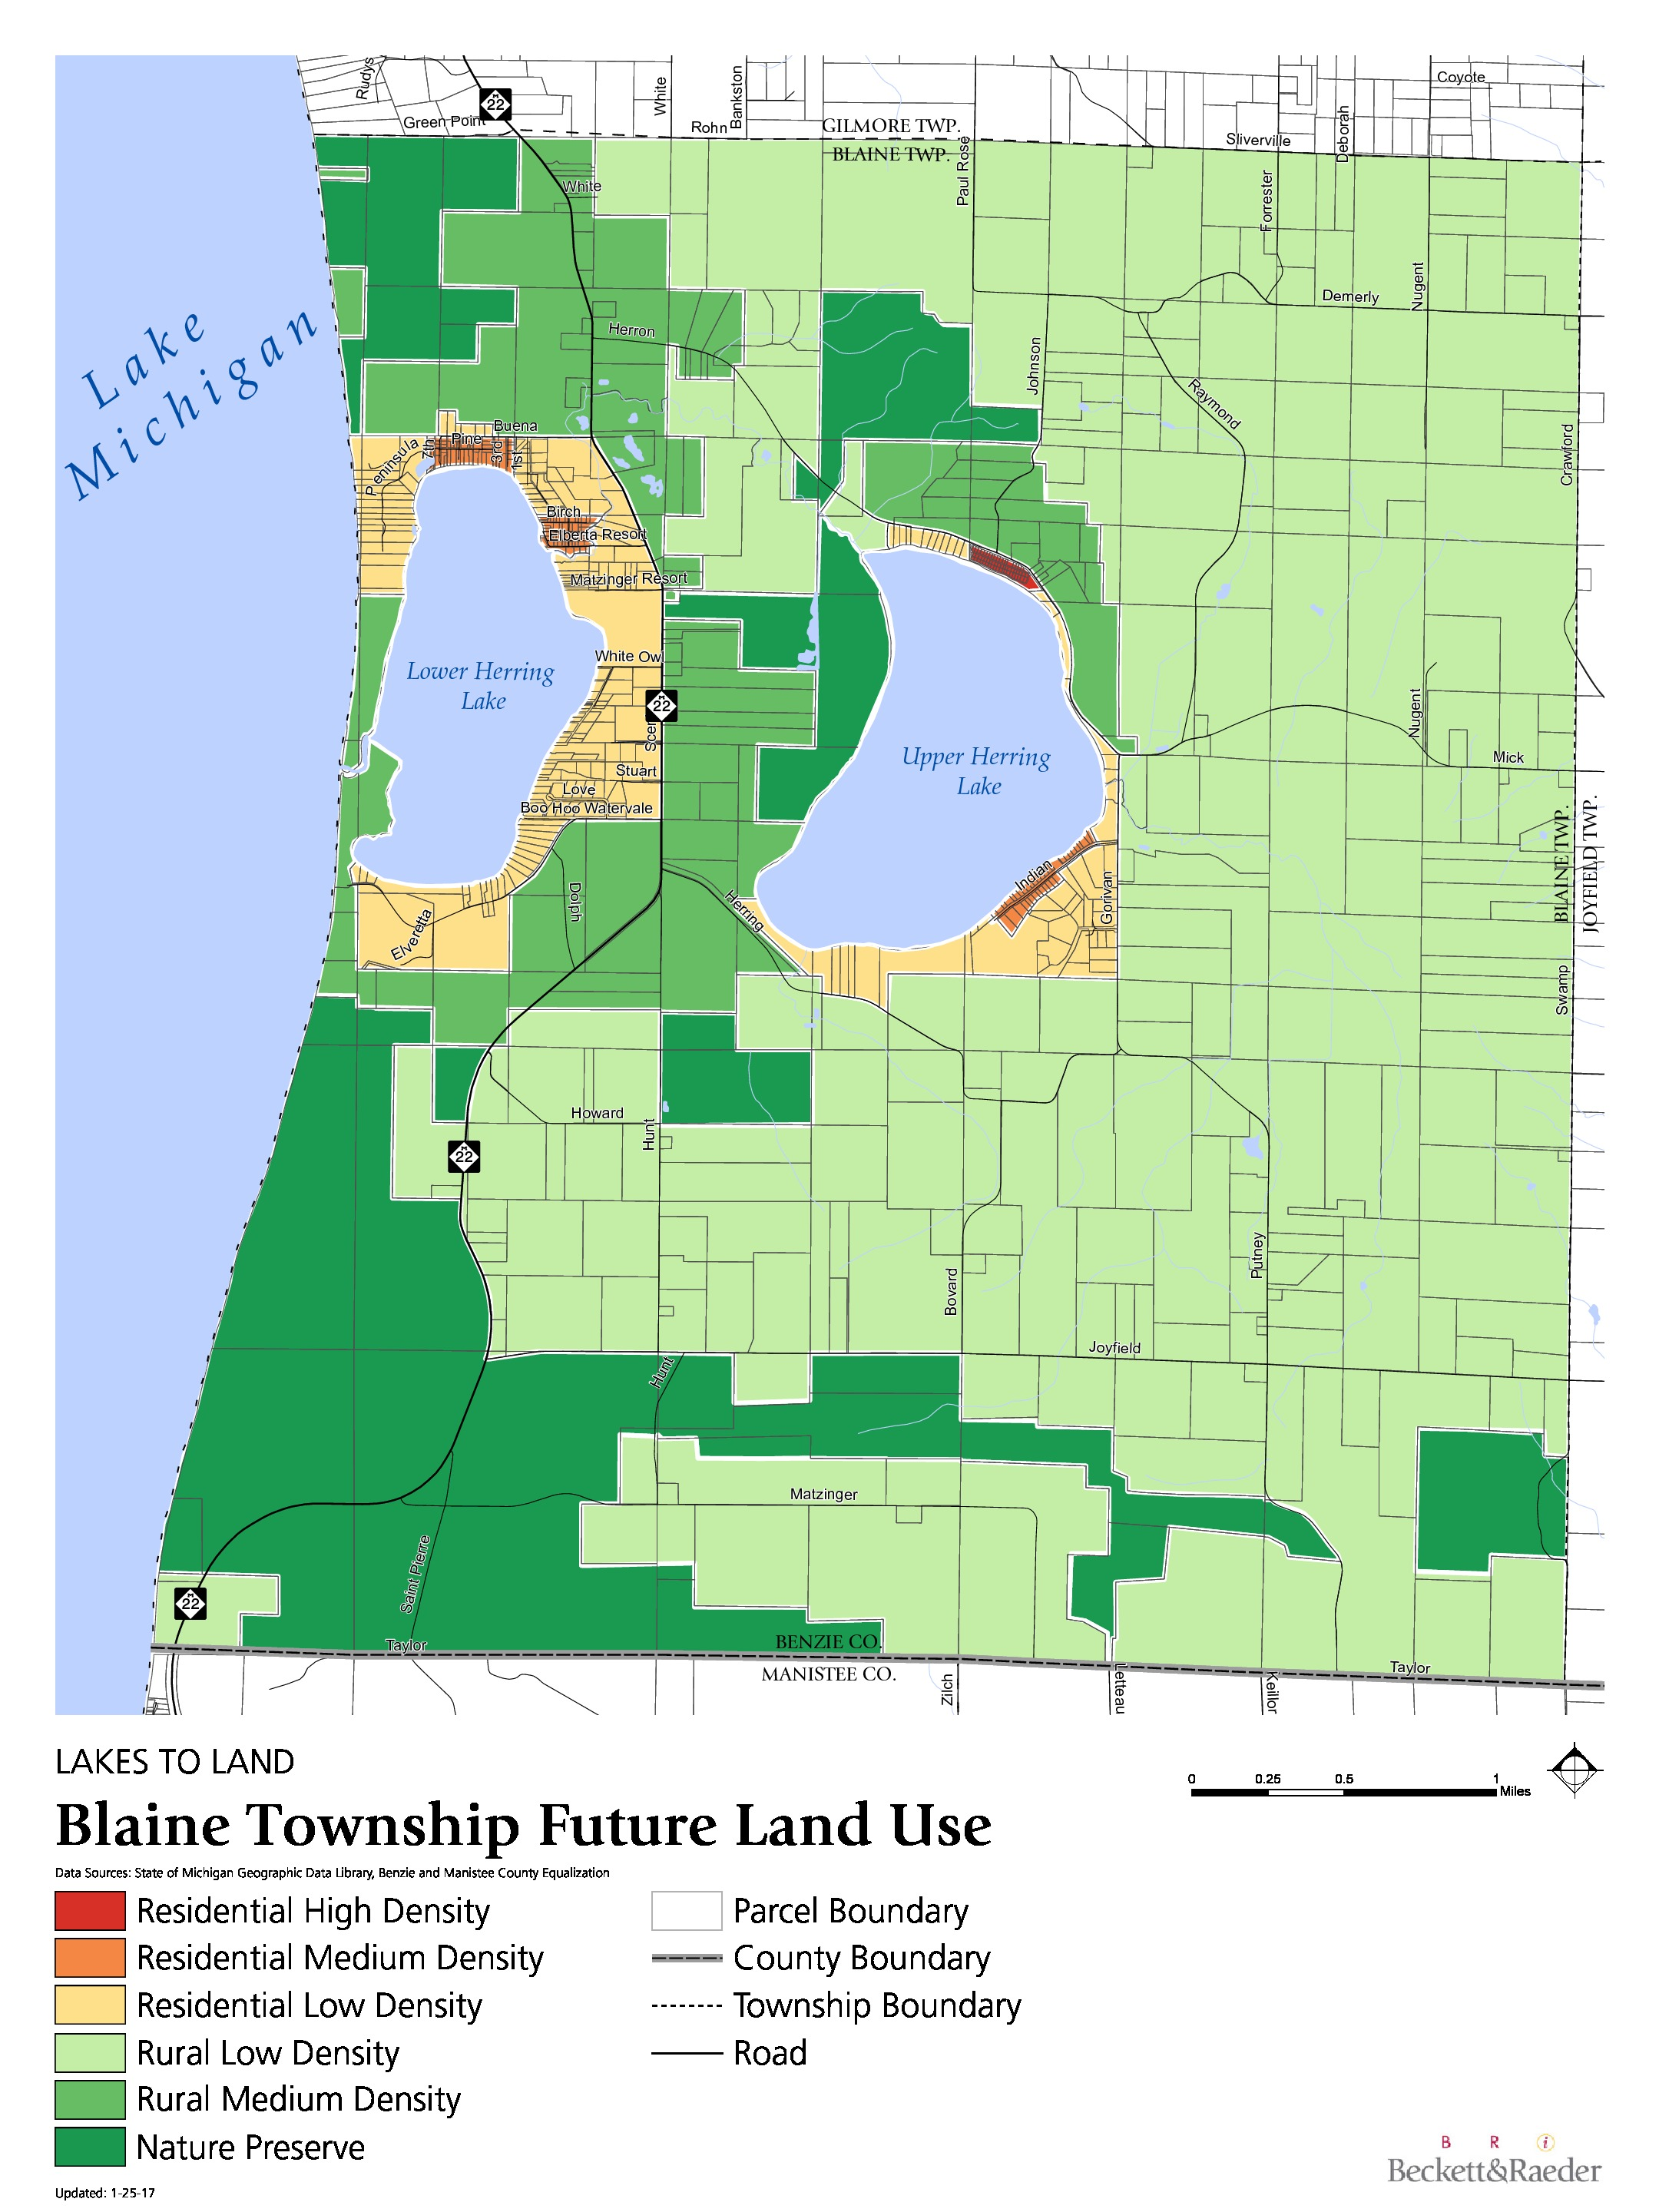 Future Land Use - Blaine Township